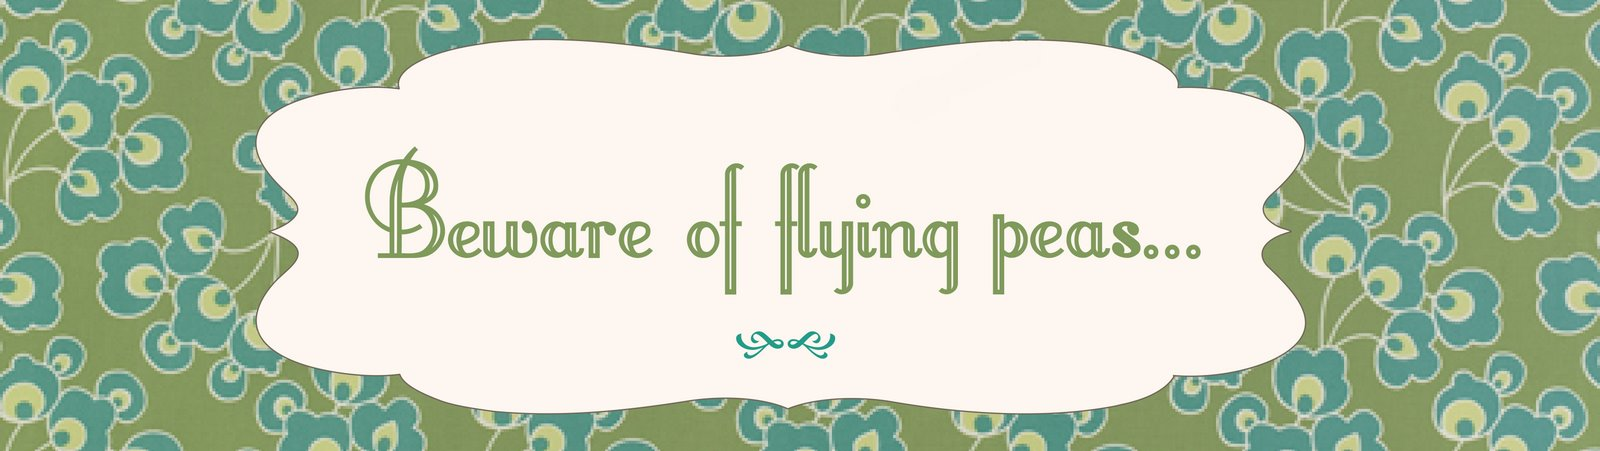 Beware of Flying Peas